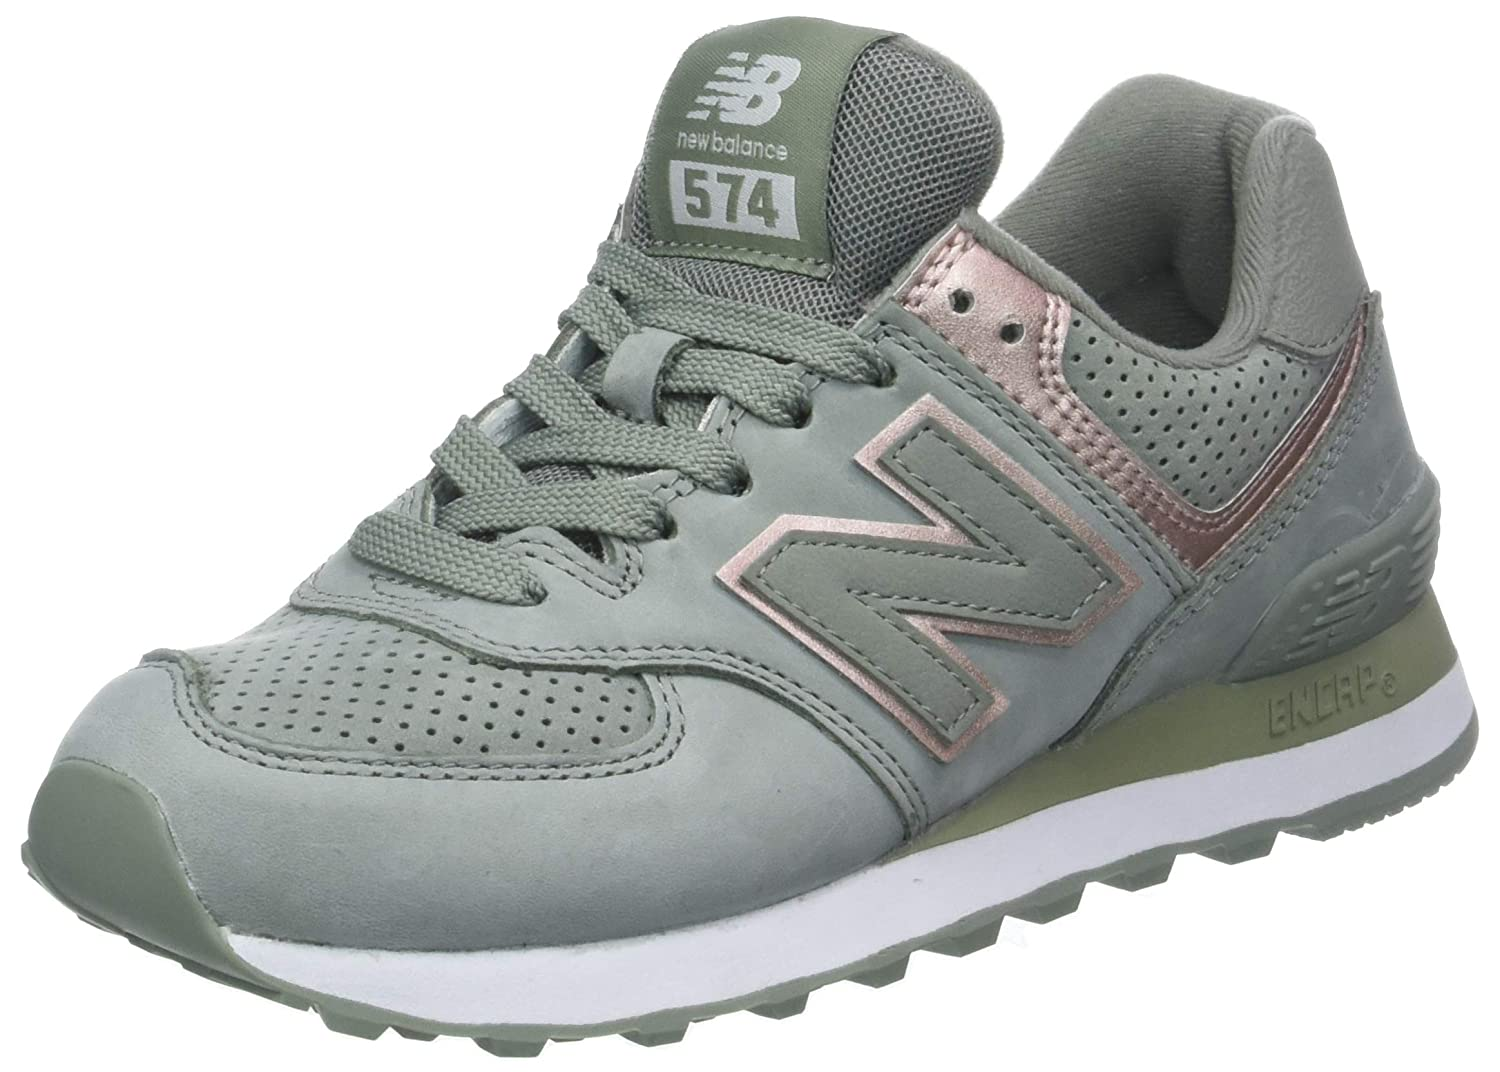 New Balance Femme Wl574, Bottes Classiques Femme Metallic Gris (Brown B00DDPR2CS Seed/Champagne Metallic Nbl) 0ca0382 - boatplans.space